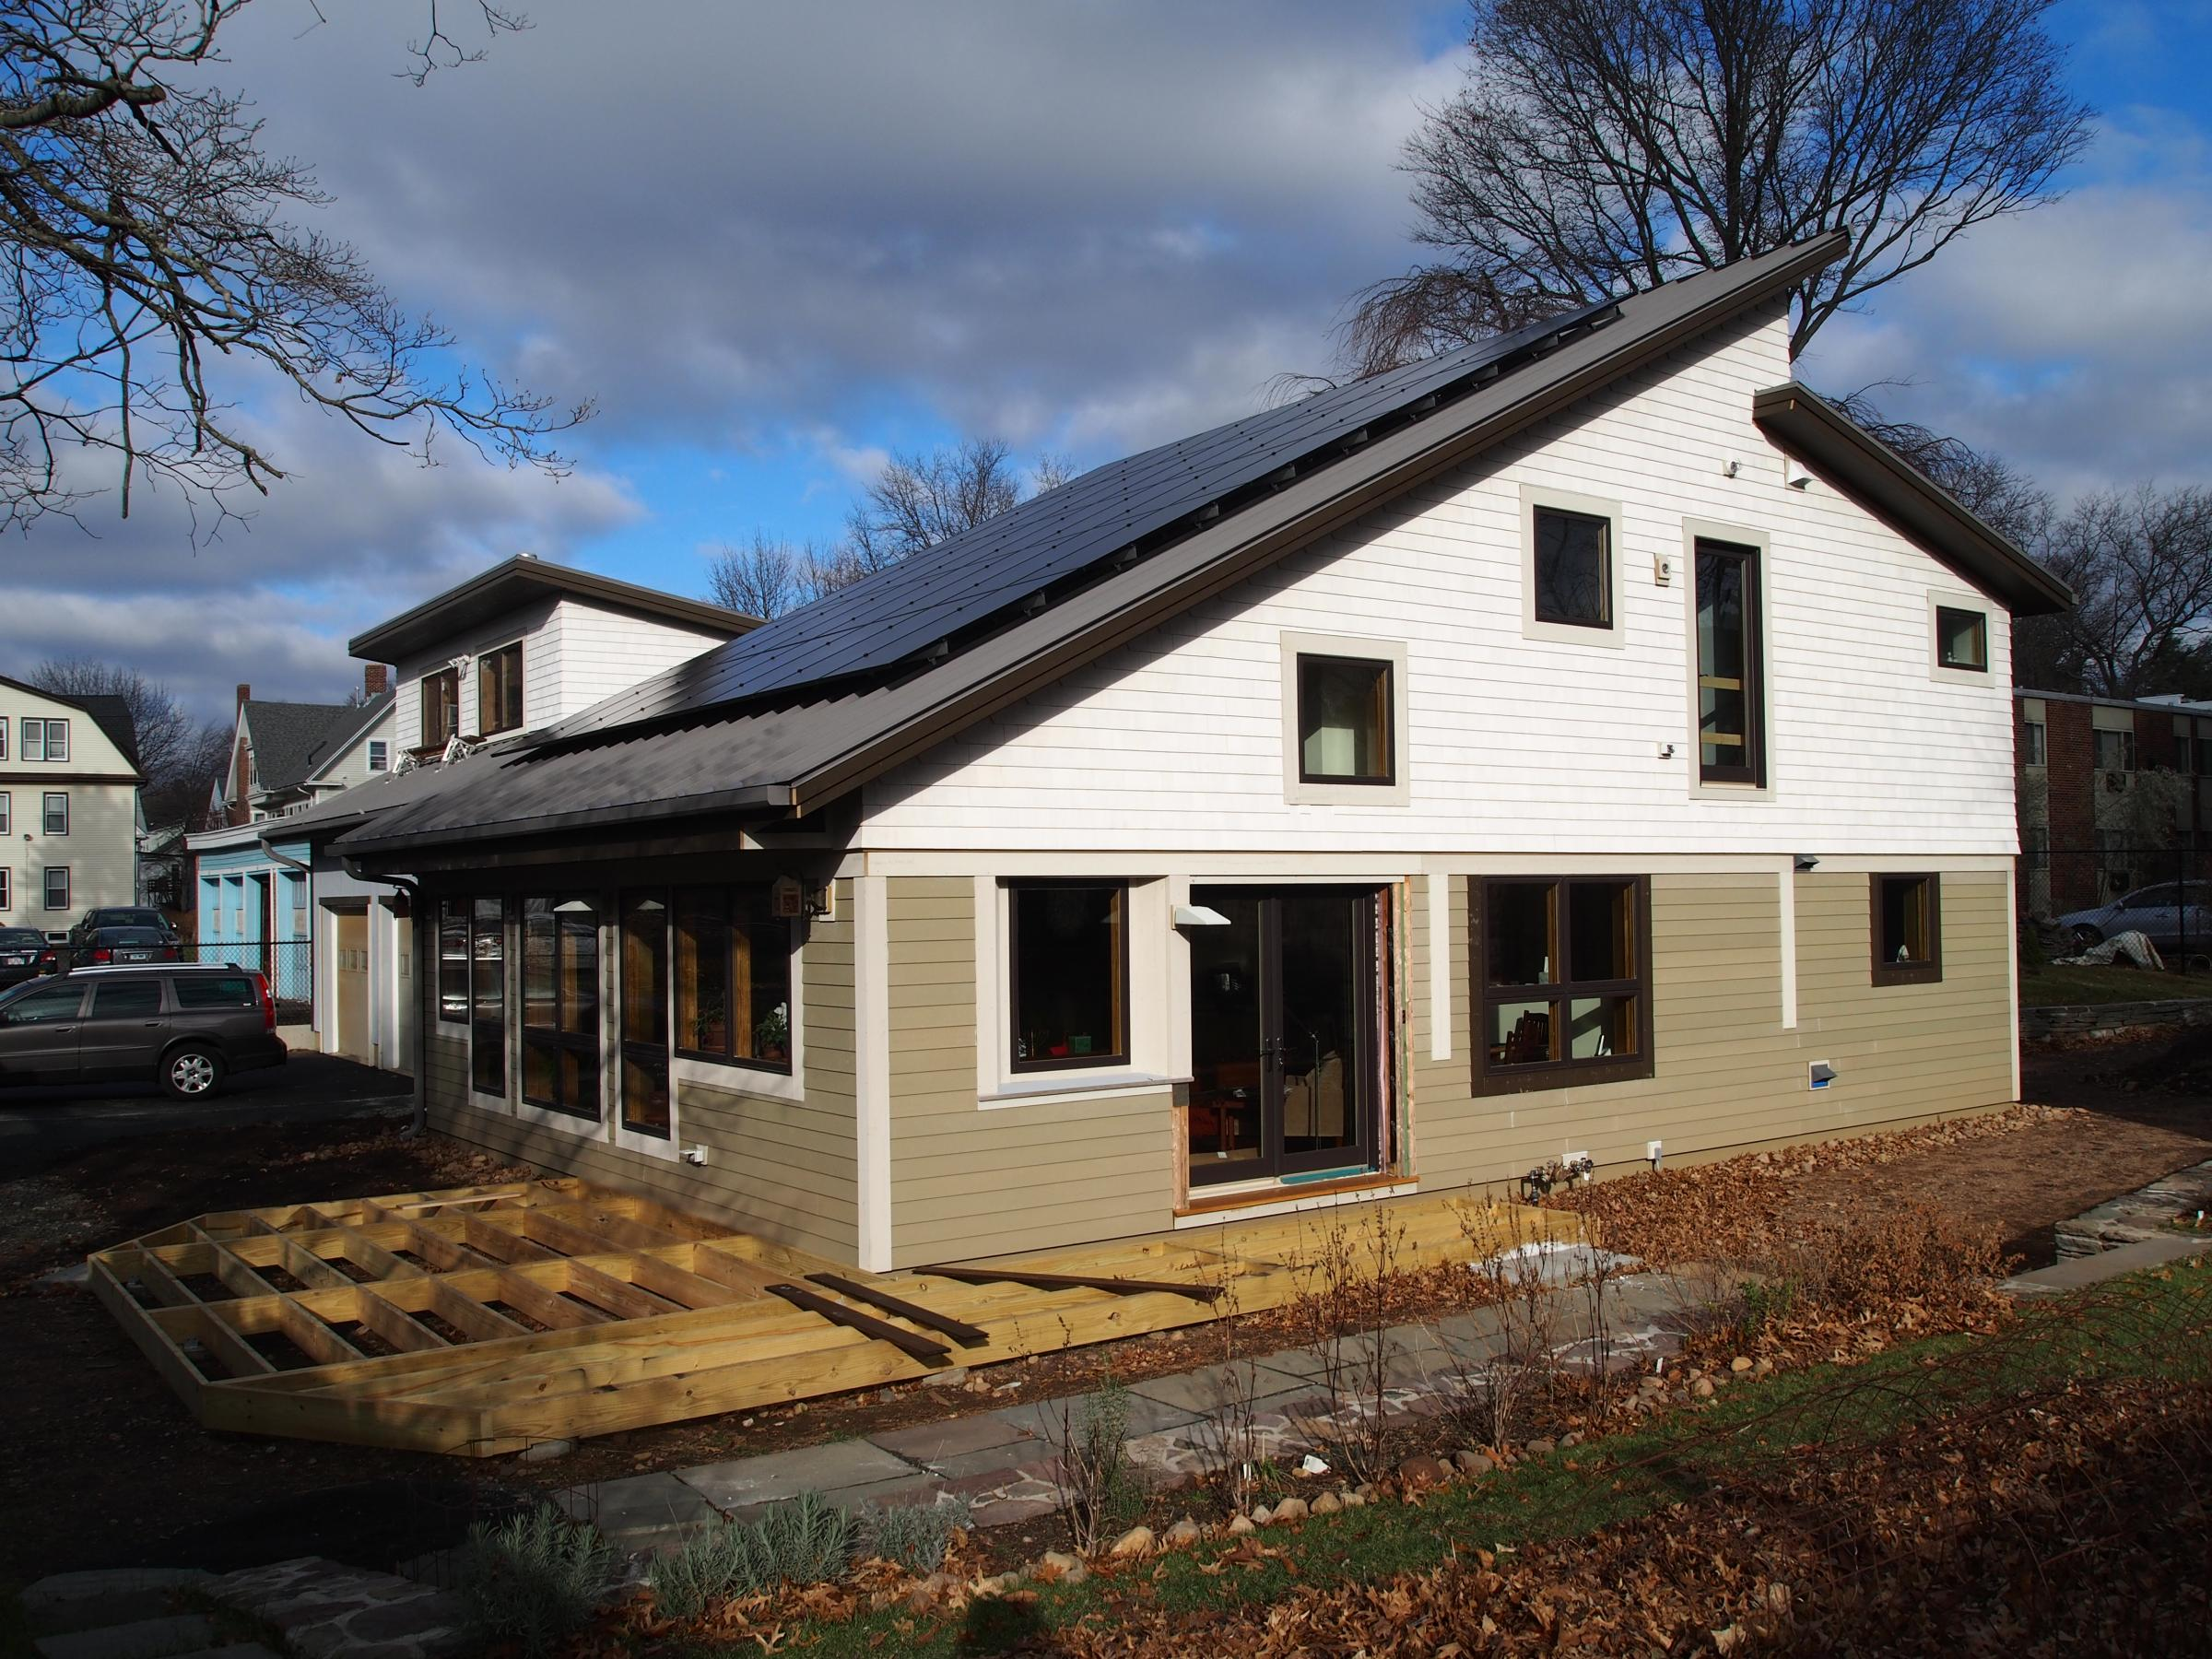 Dickson Residence and roof solar array